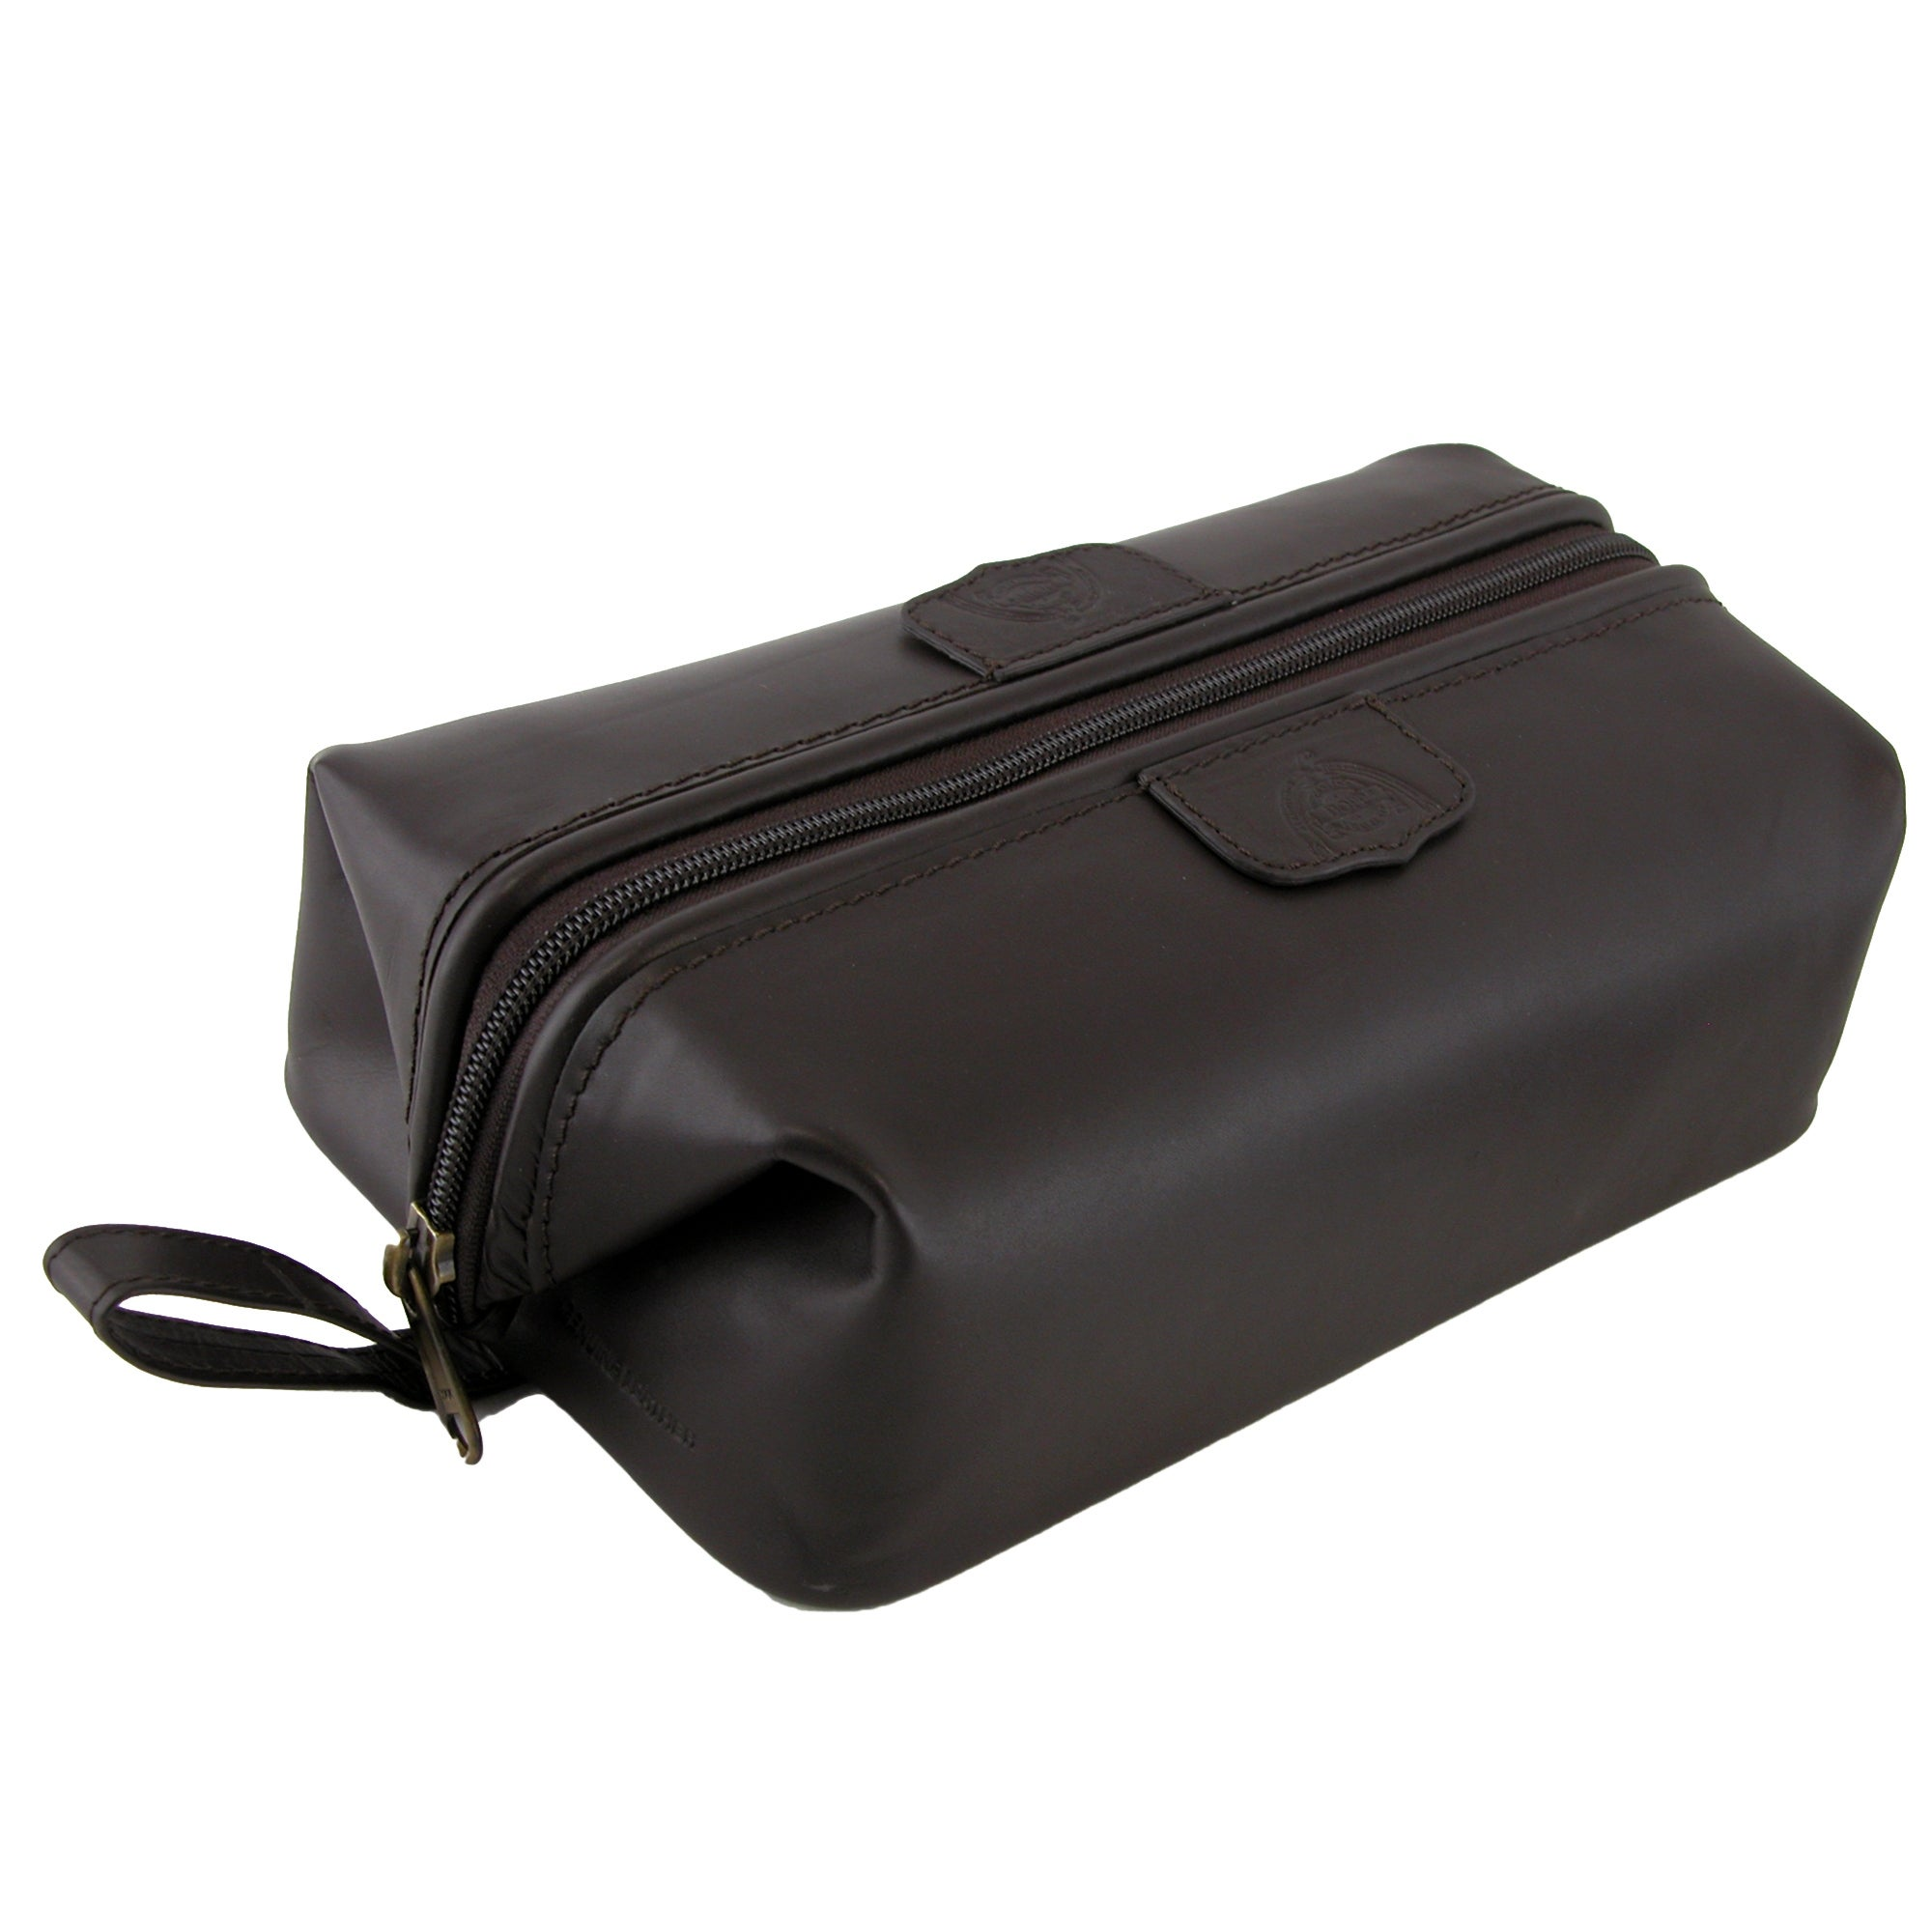 Dopp Men S Leather Water Resistant Travel Kit Bag One Size Free Shipping Today 14277622